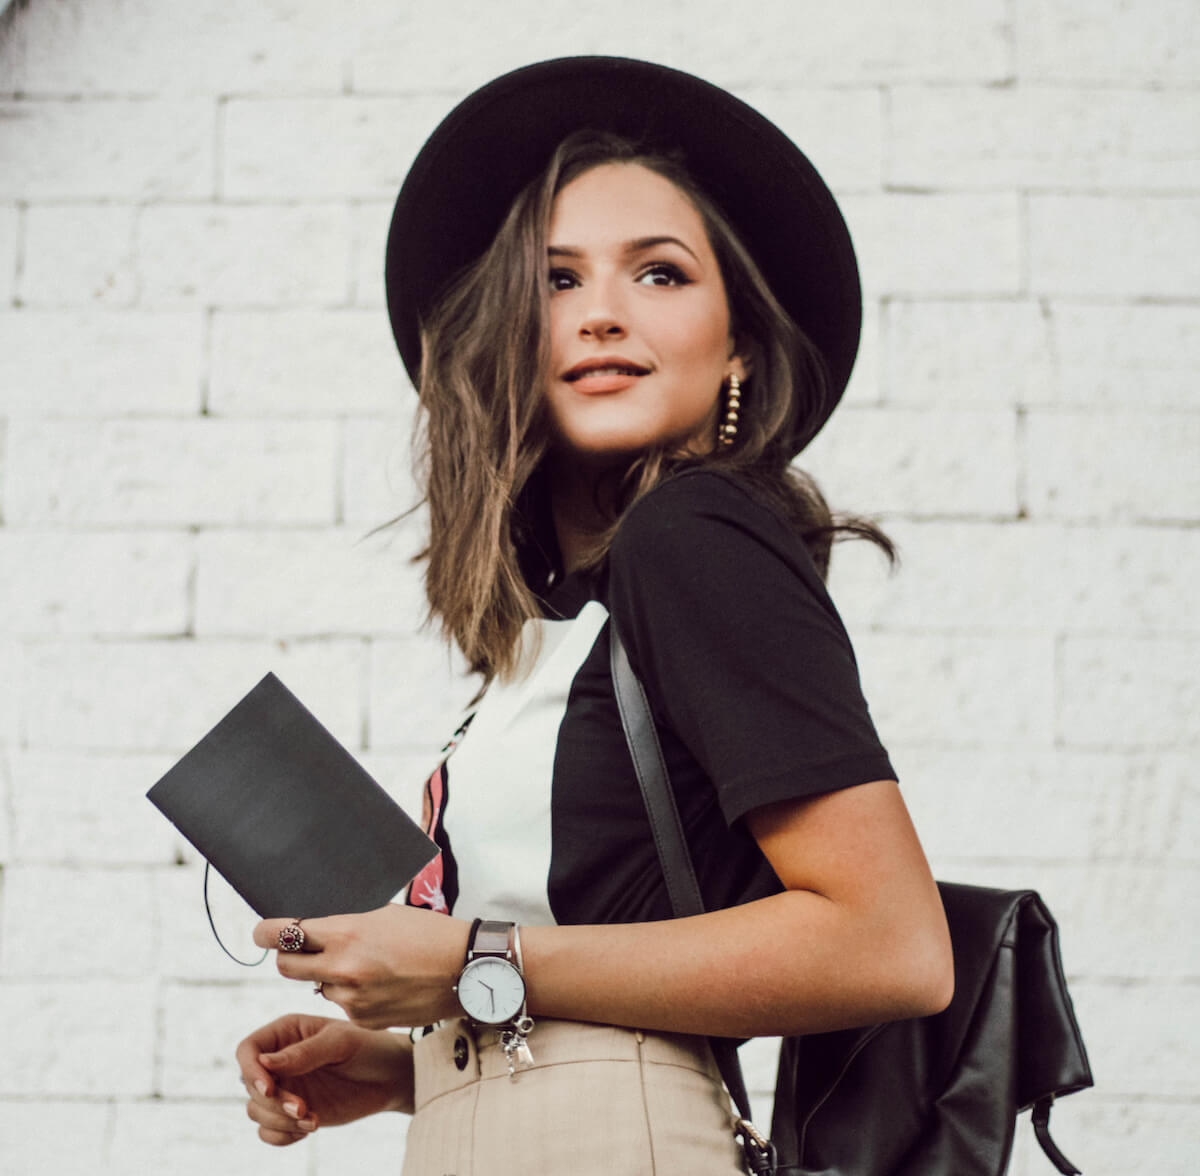 Unsplash: Fashionable girl in a hat smiling at the camera